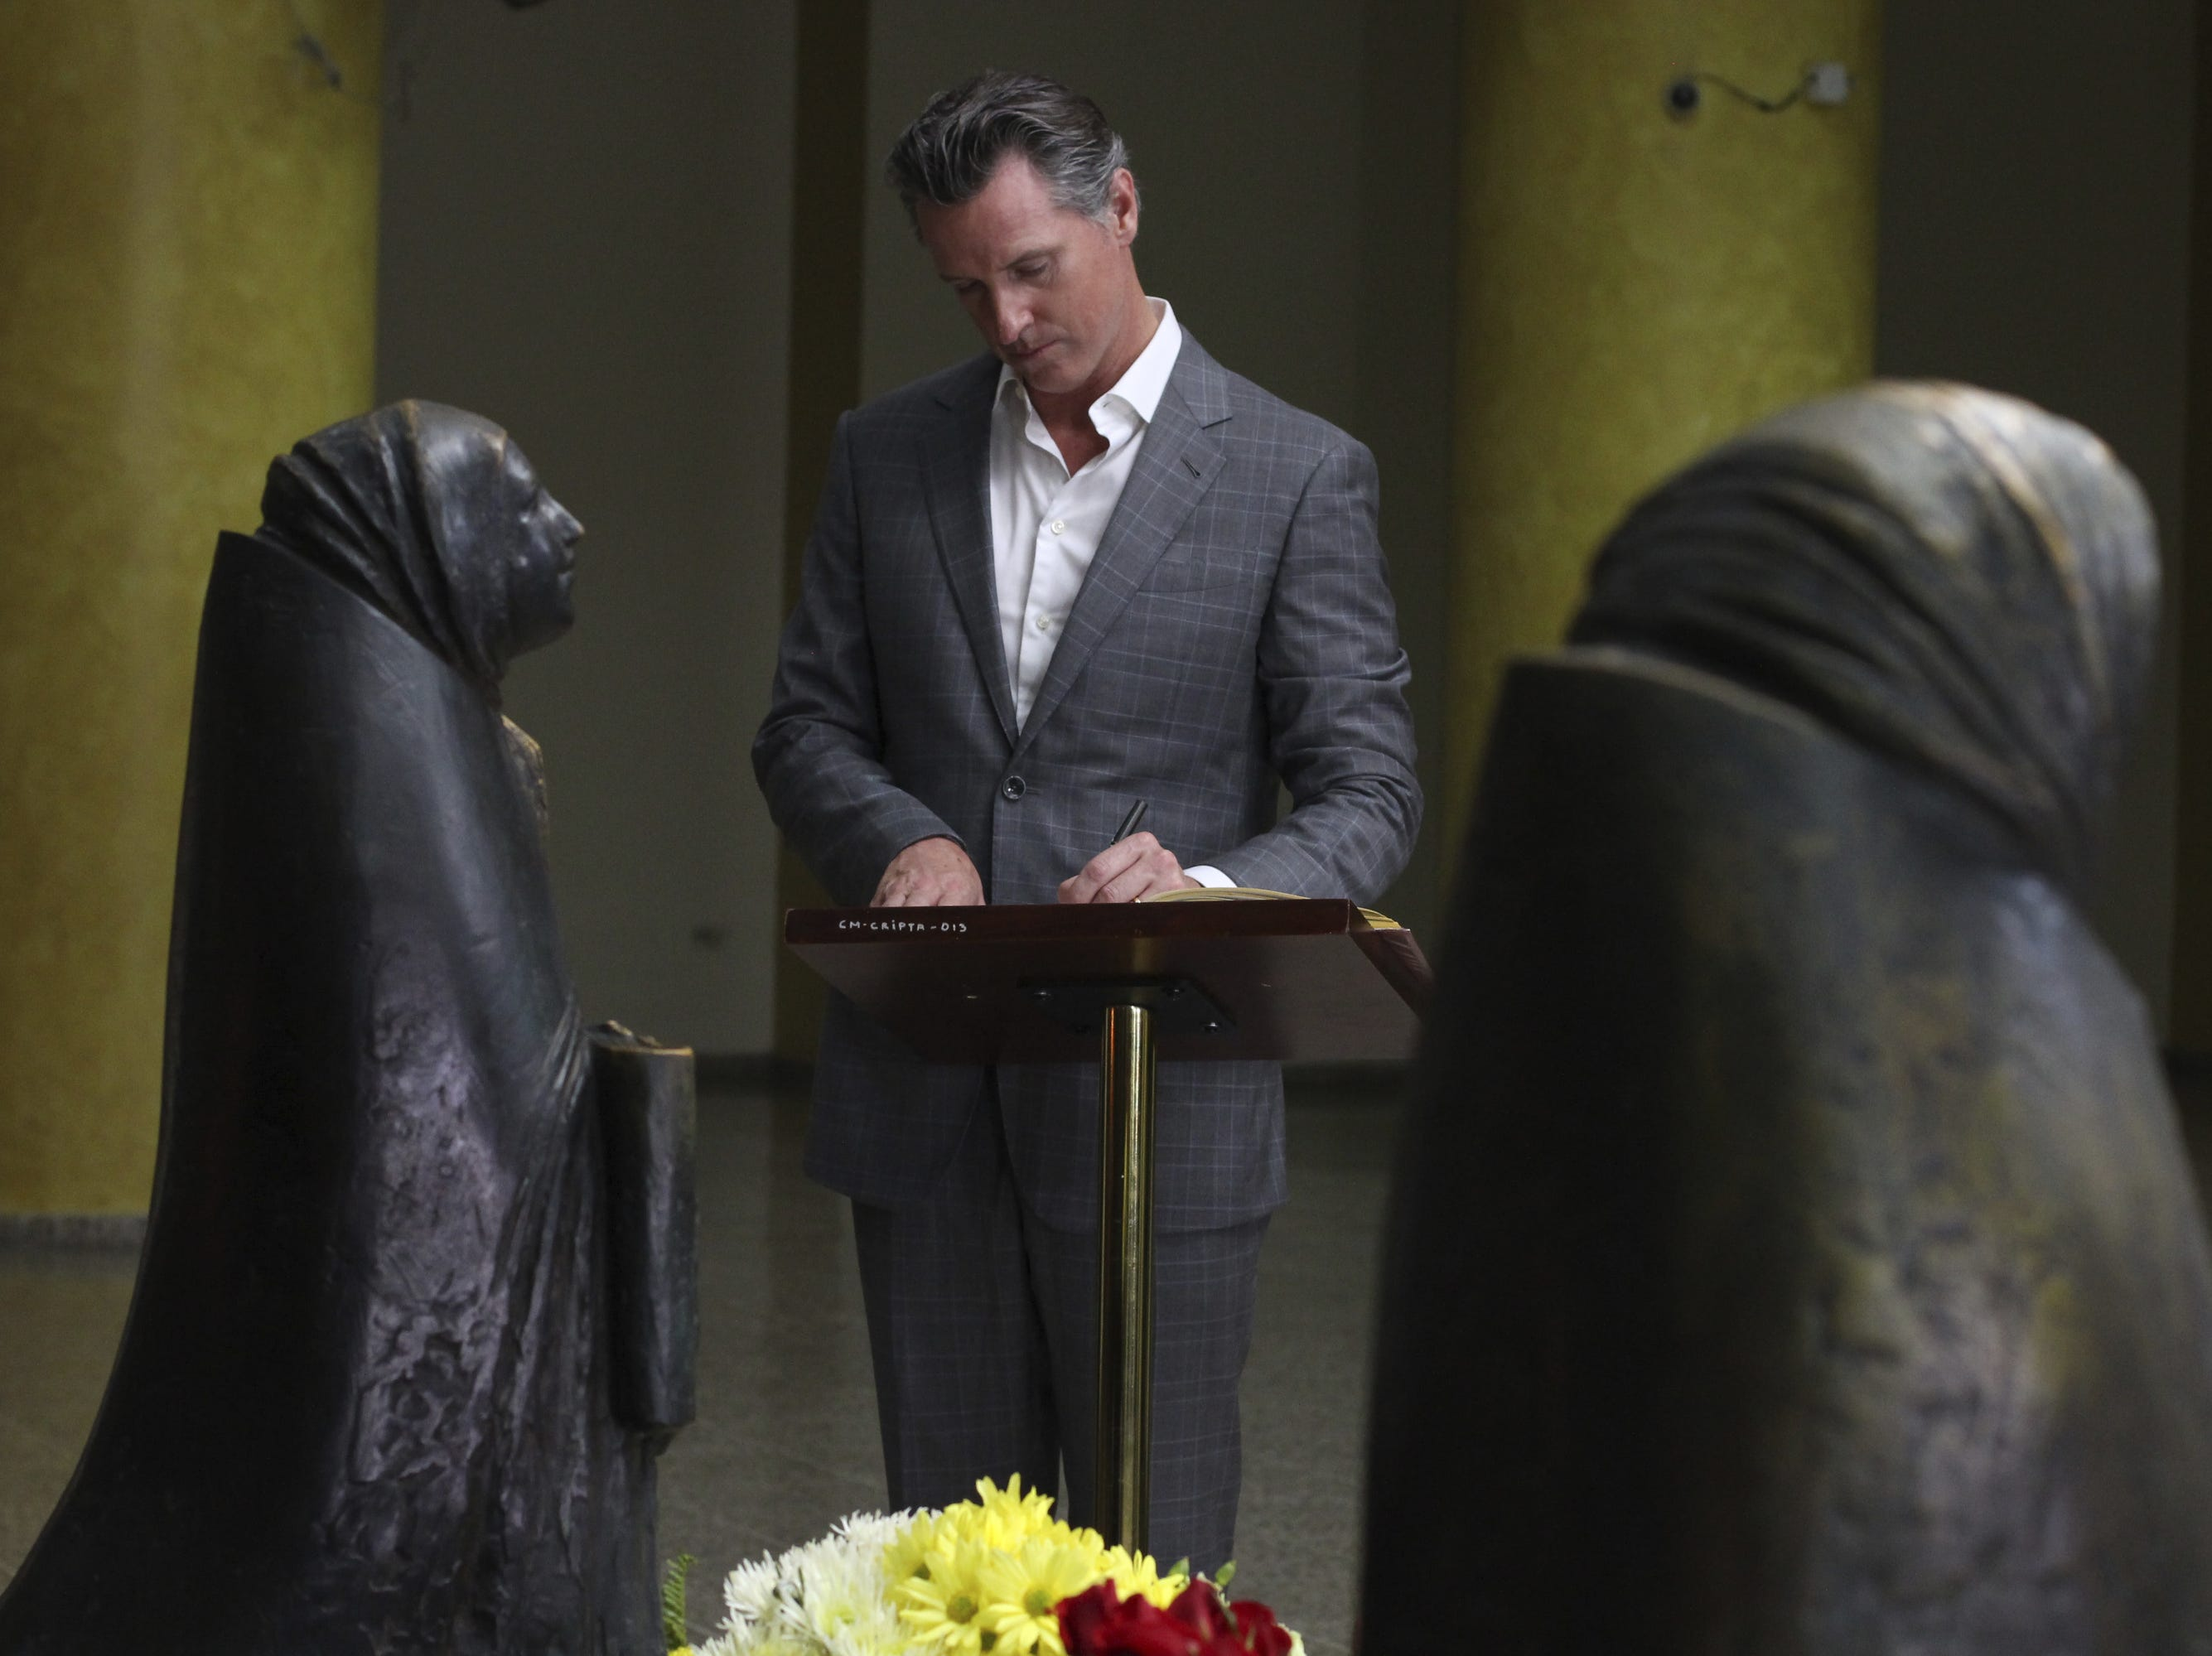 California Gov. Gavin Newsom writes a note on a book at the the tomb of Archbishop Oscar Romero at Metropolitan Cathedral in San Salvador, El Salvador, on Sunday, April 7, 2019. Romero was a Salvadoran priest assassinated in 1980 due to his advocacy for human rights and the poor.